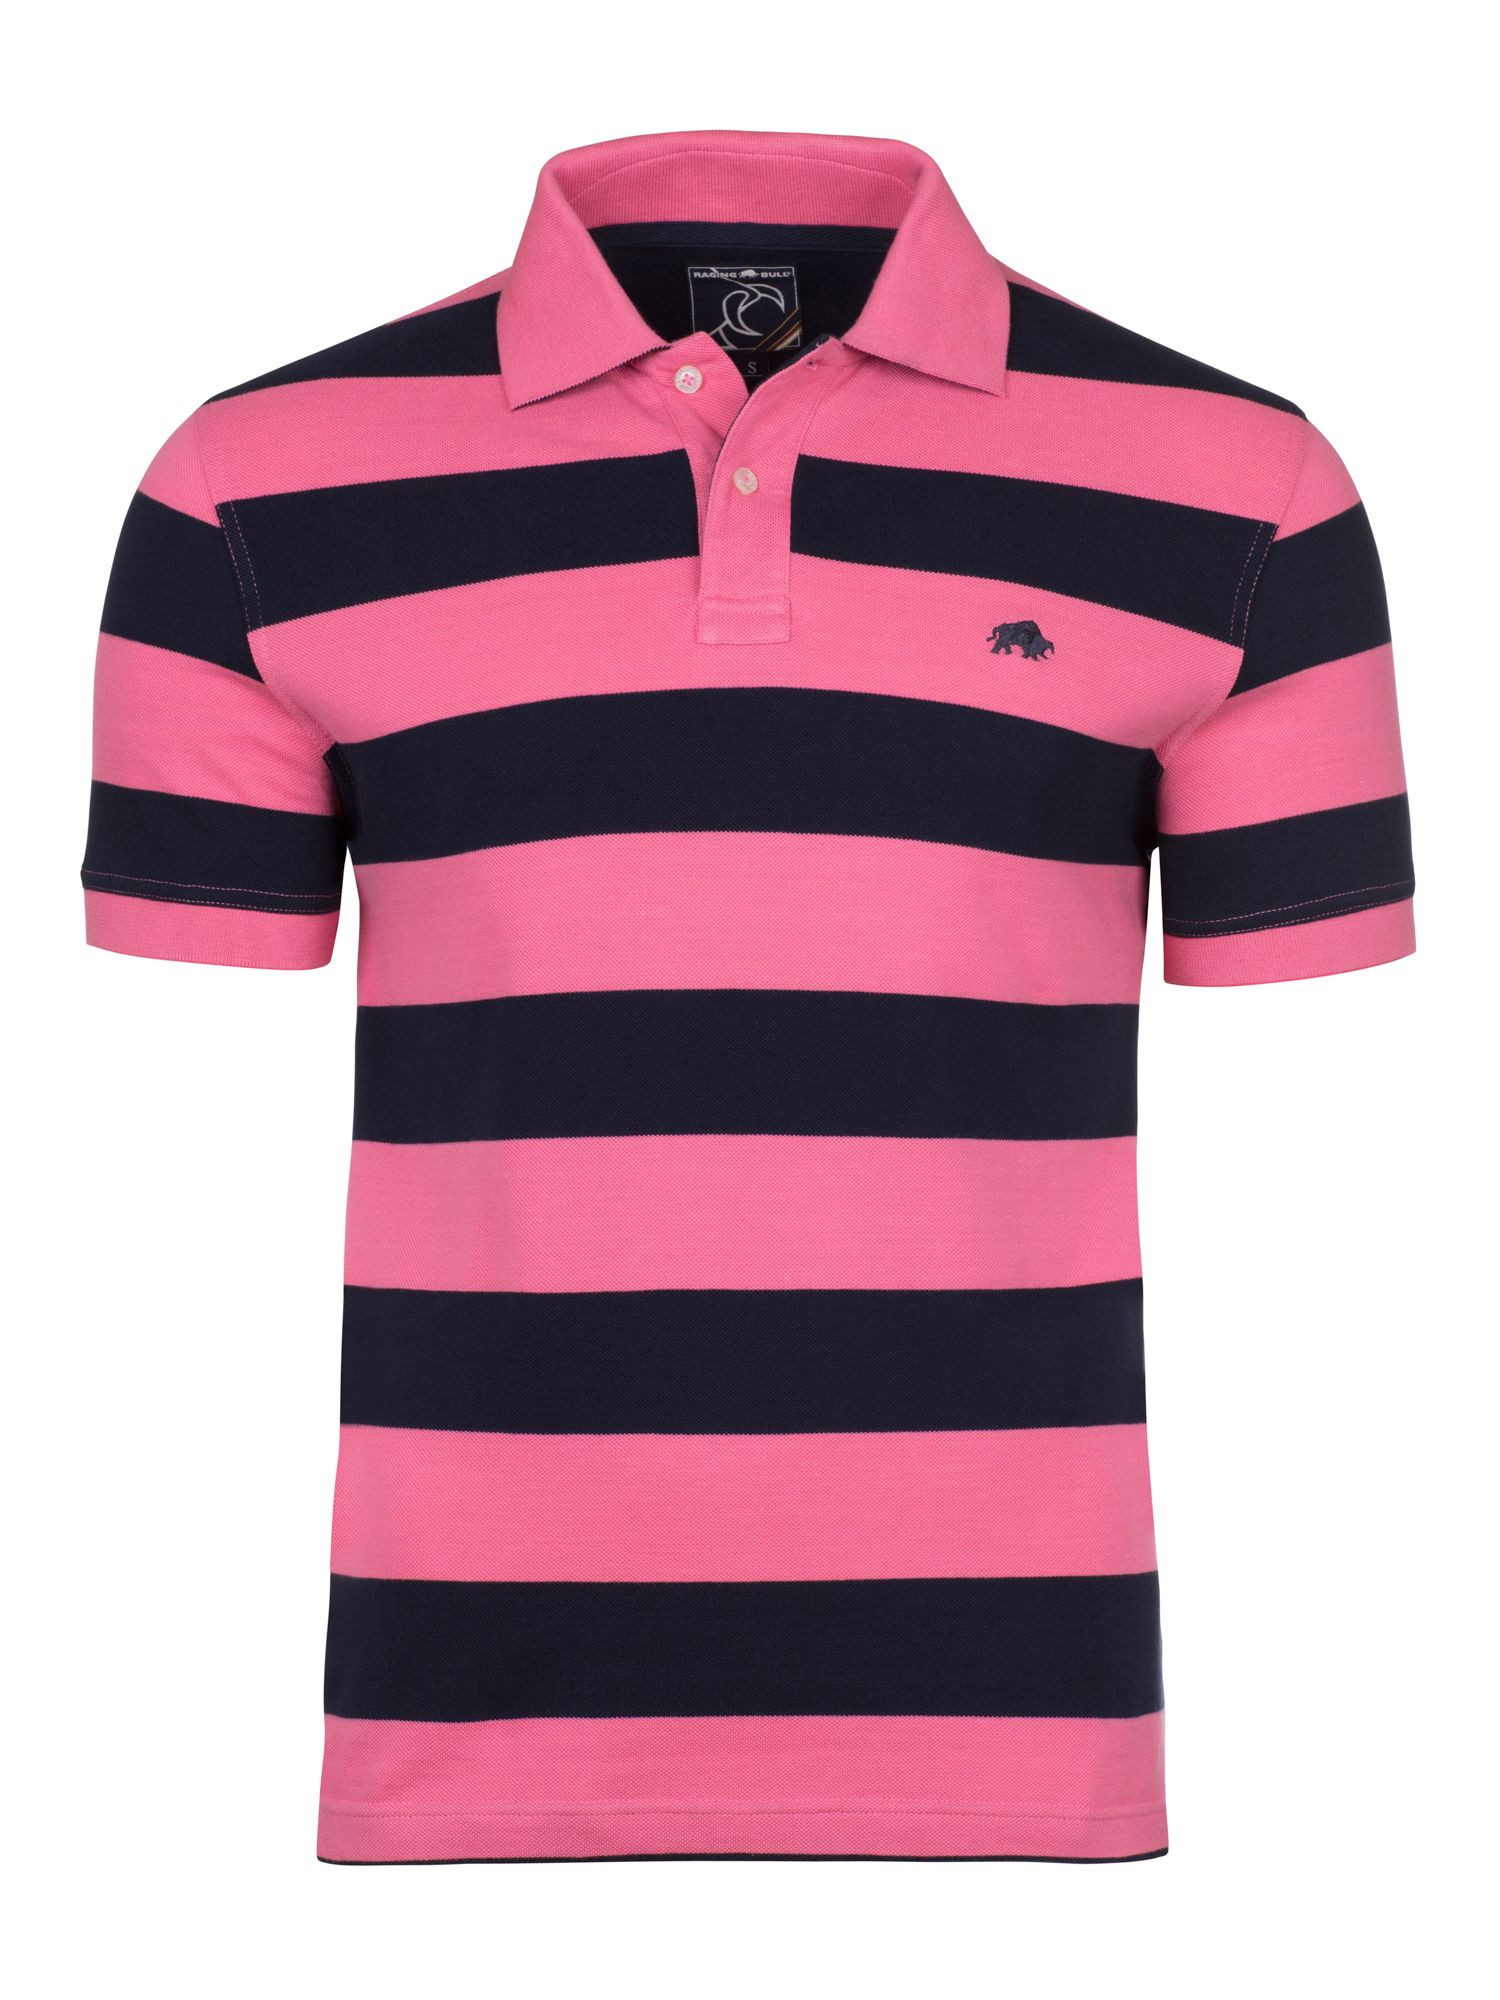 Men's Raging Bull Big & Tall Large Hoop Polo, Pink